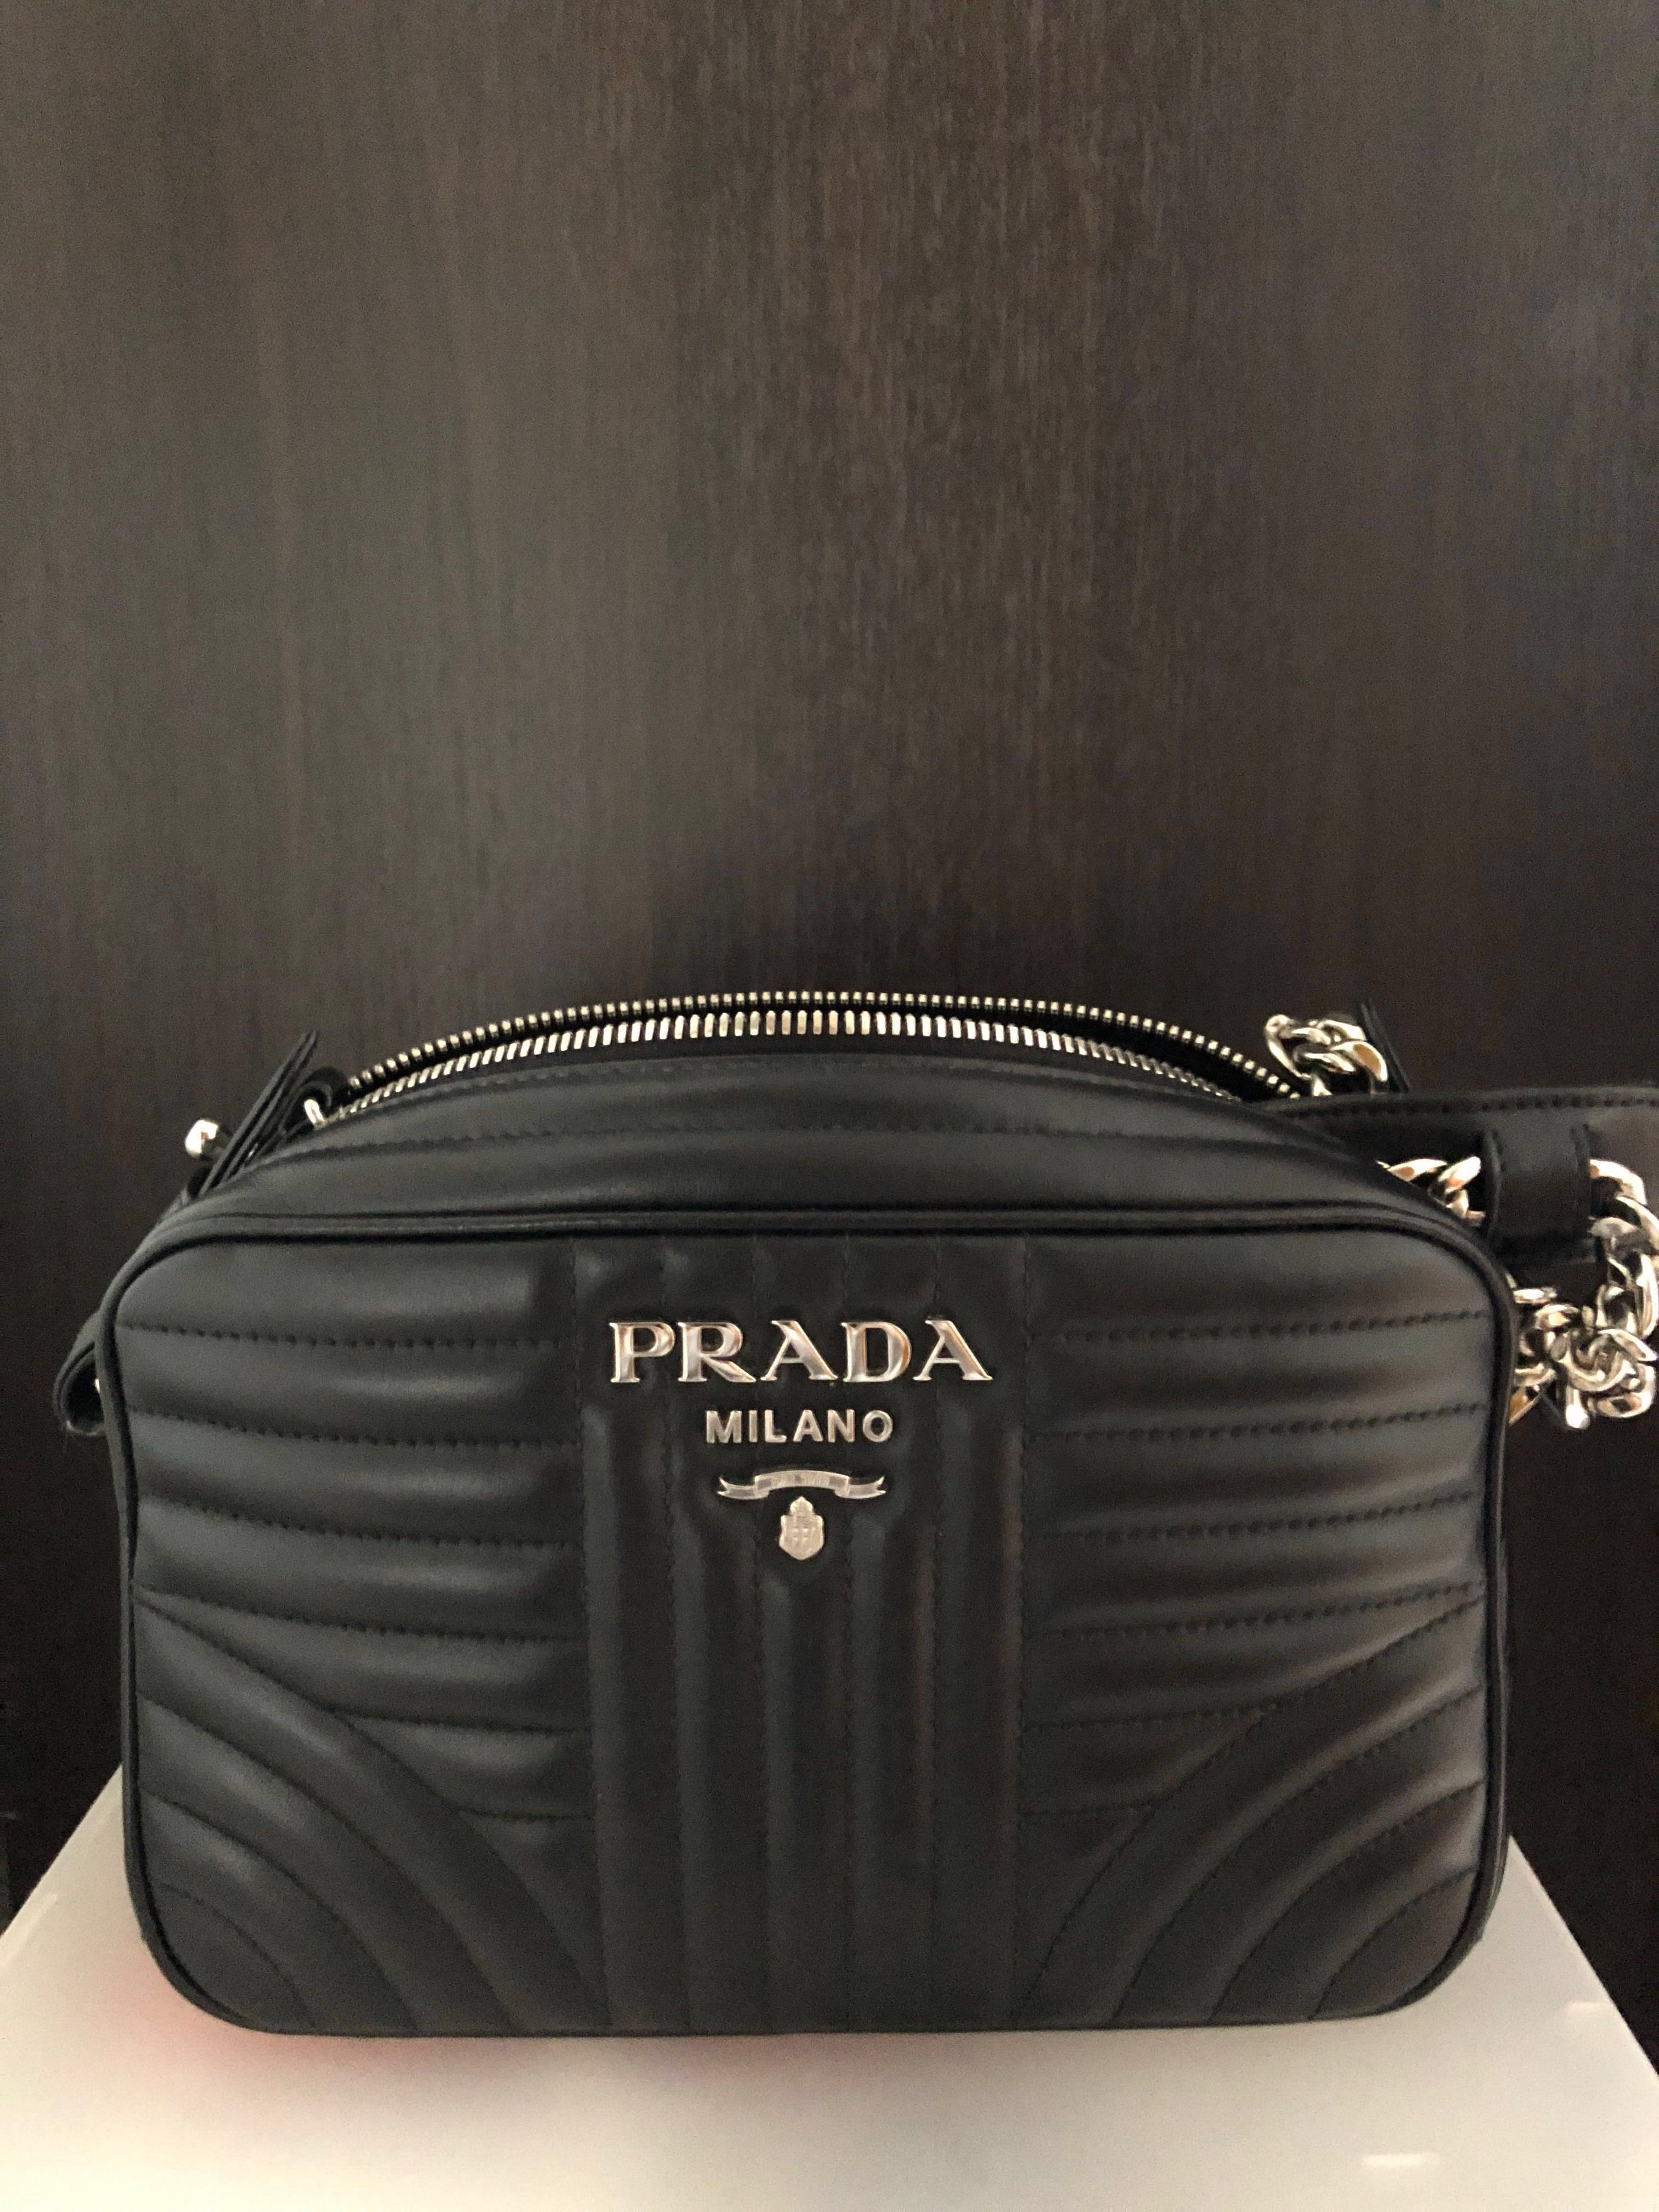 e122441a018a Prada Bag Diagramme camera bag, Luxury, Bags & Wallets, Sling Bags on  Carousell